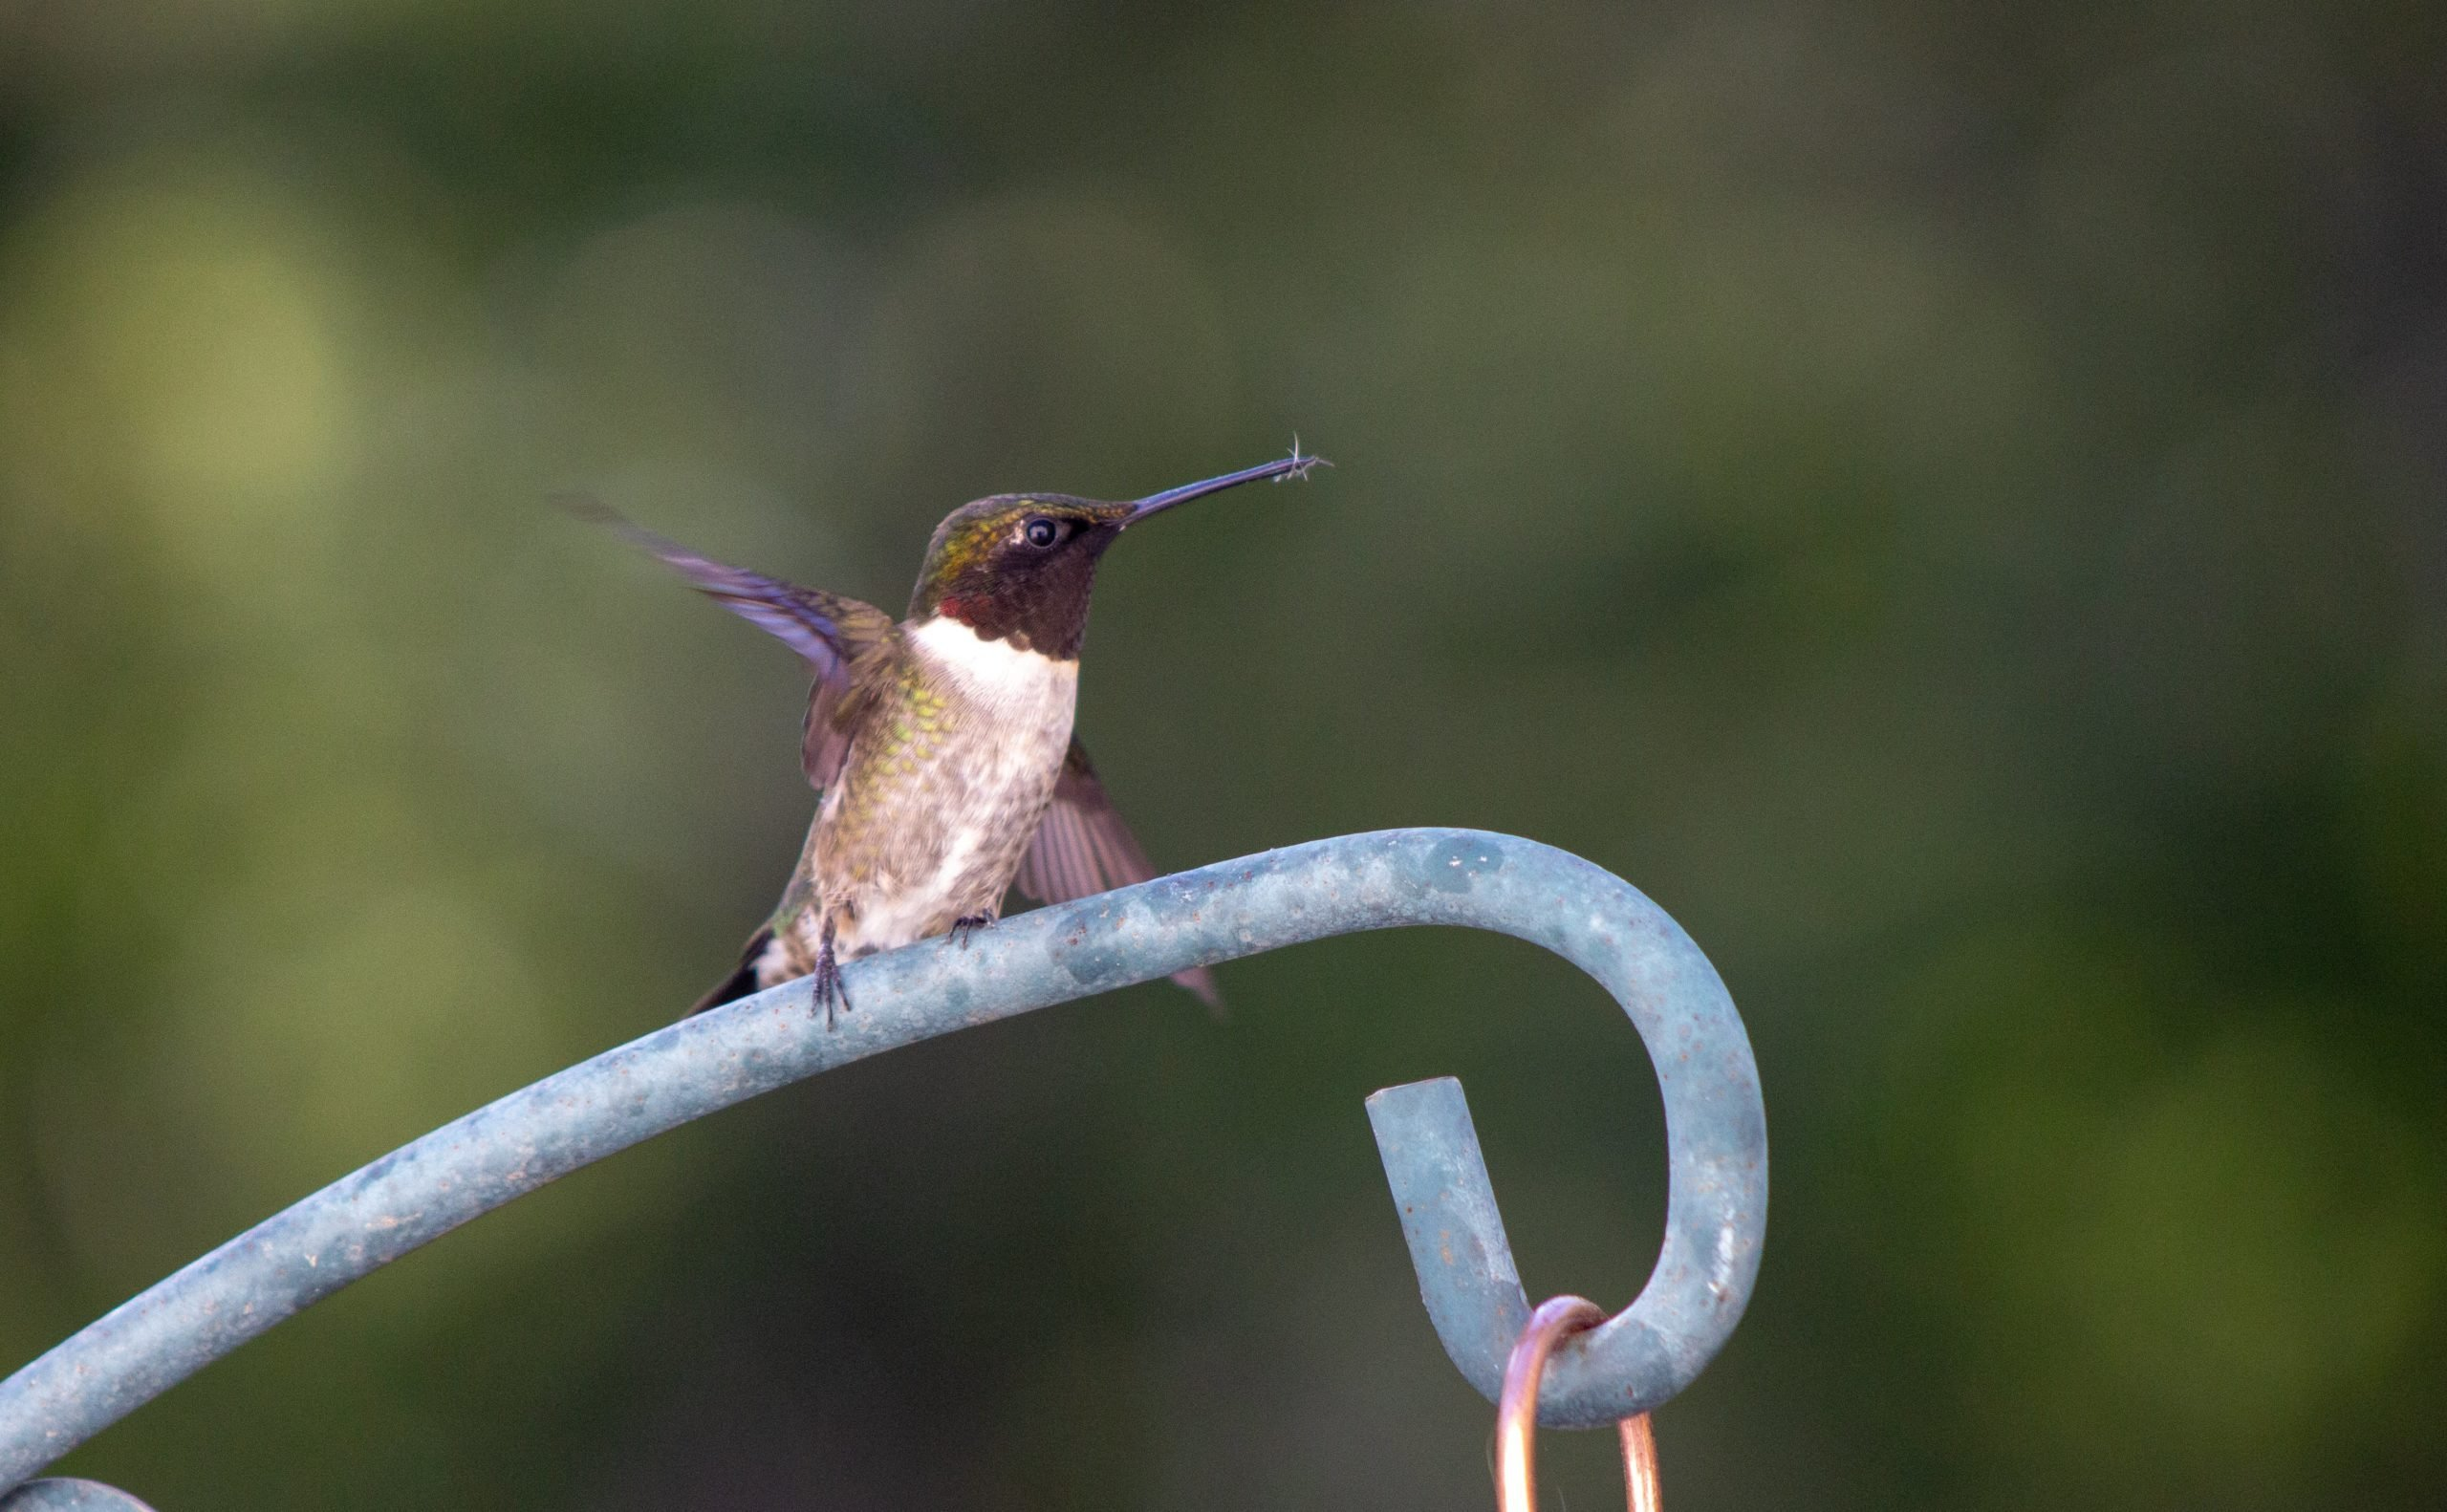 hummingbird eating a mosquito